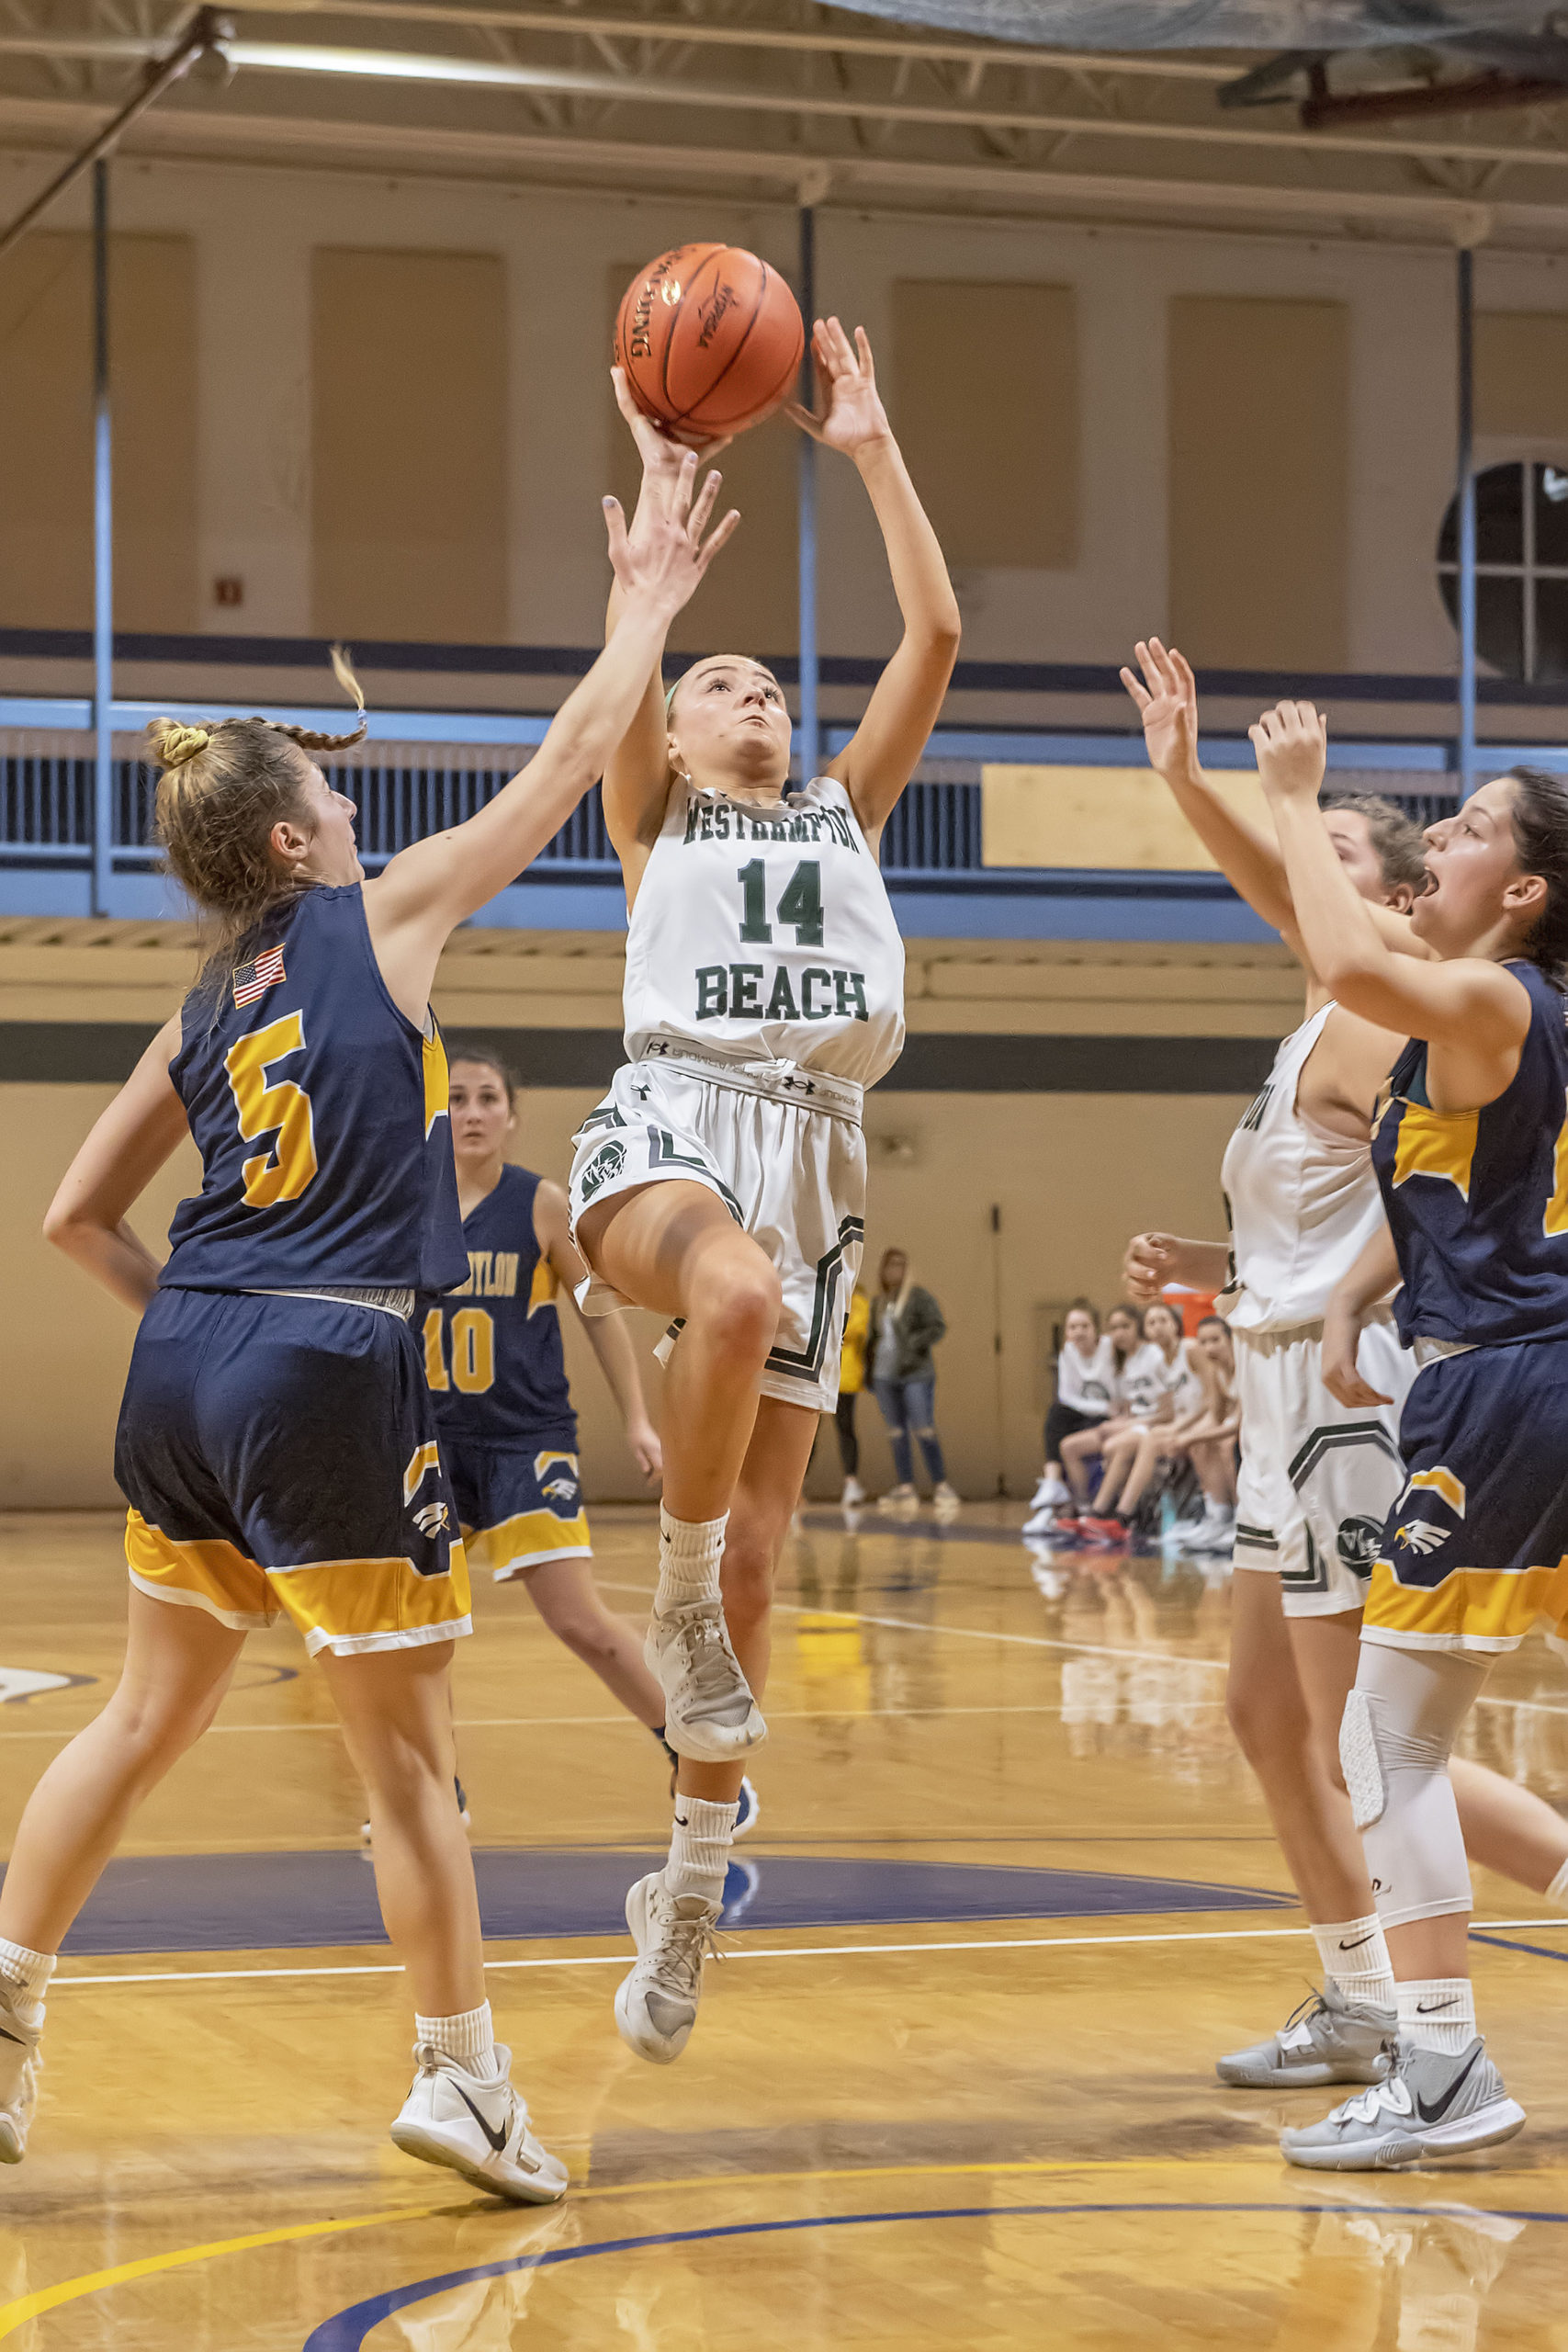 Westhampton Beach senior Isabelle Smith scored a game-high 22 points on Tuesday night.